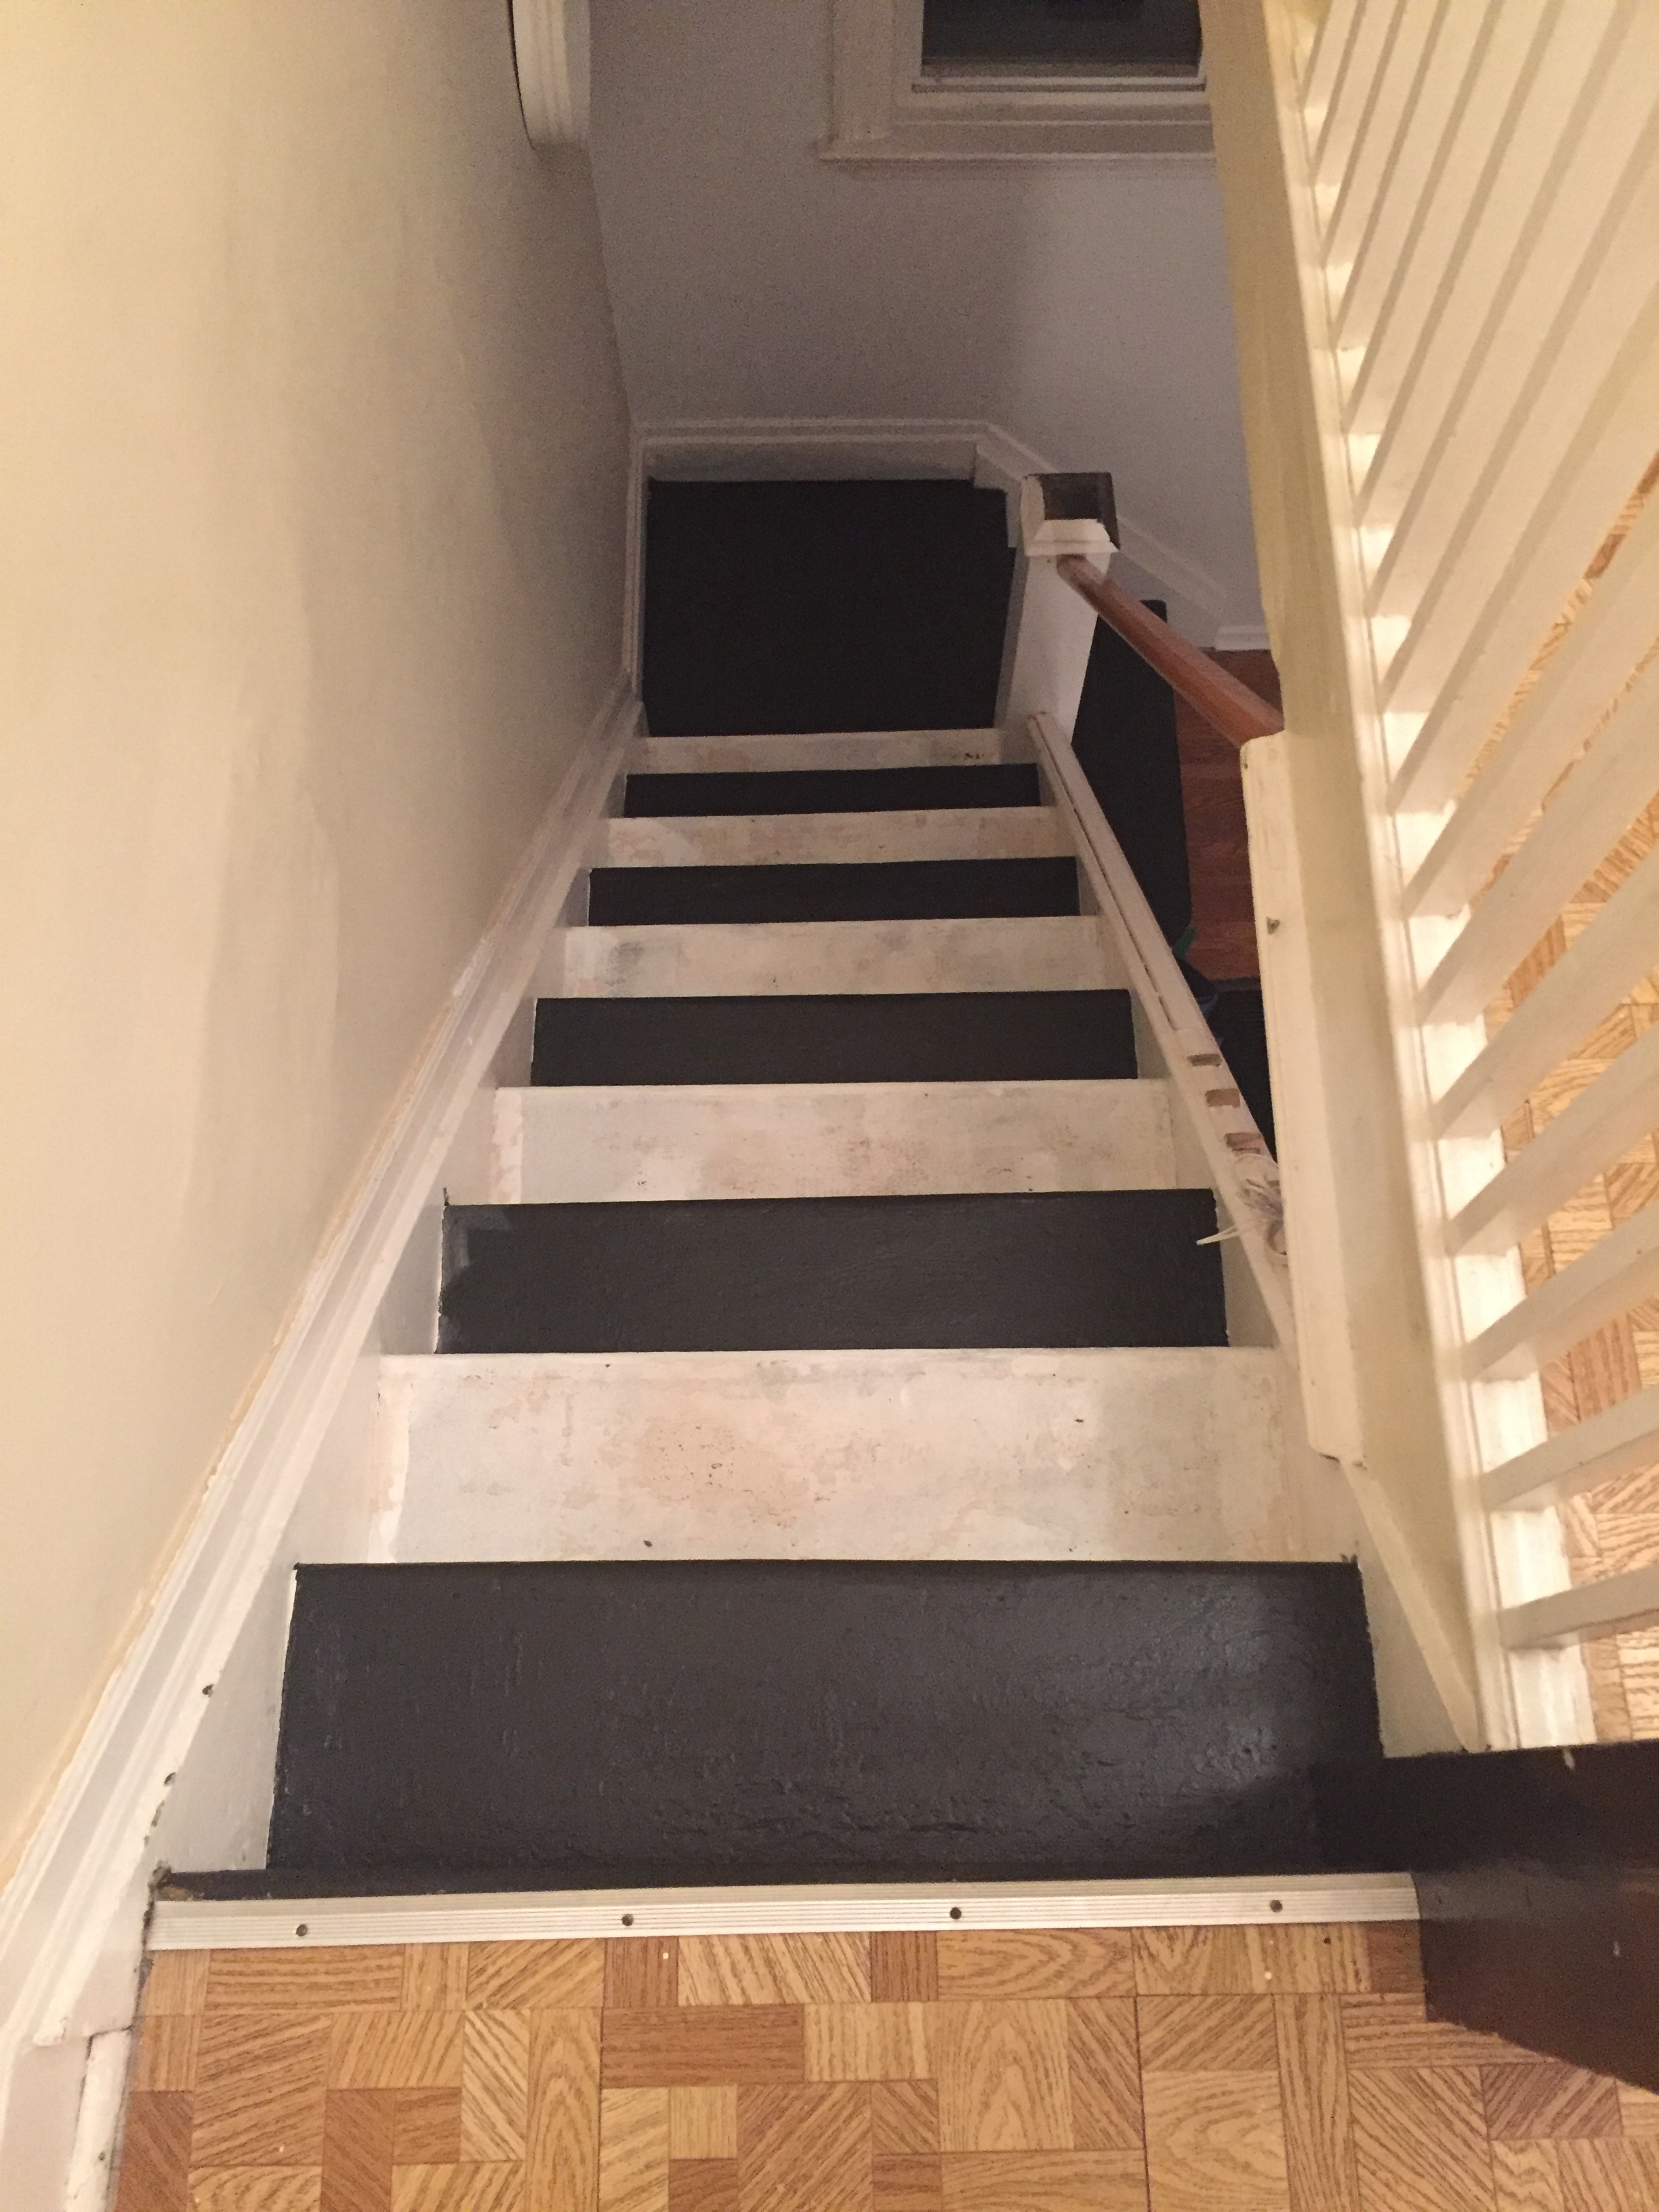 lesley-metcalfe-staircase-refinishing-every-other-stair-painted.JPG